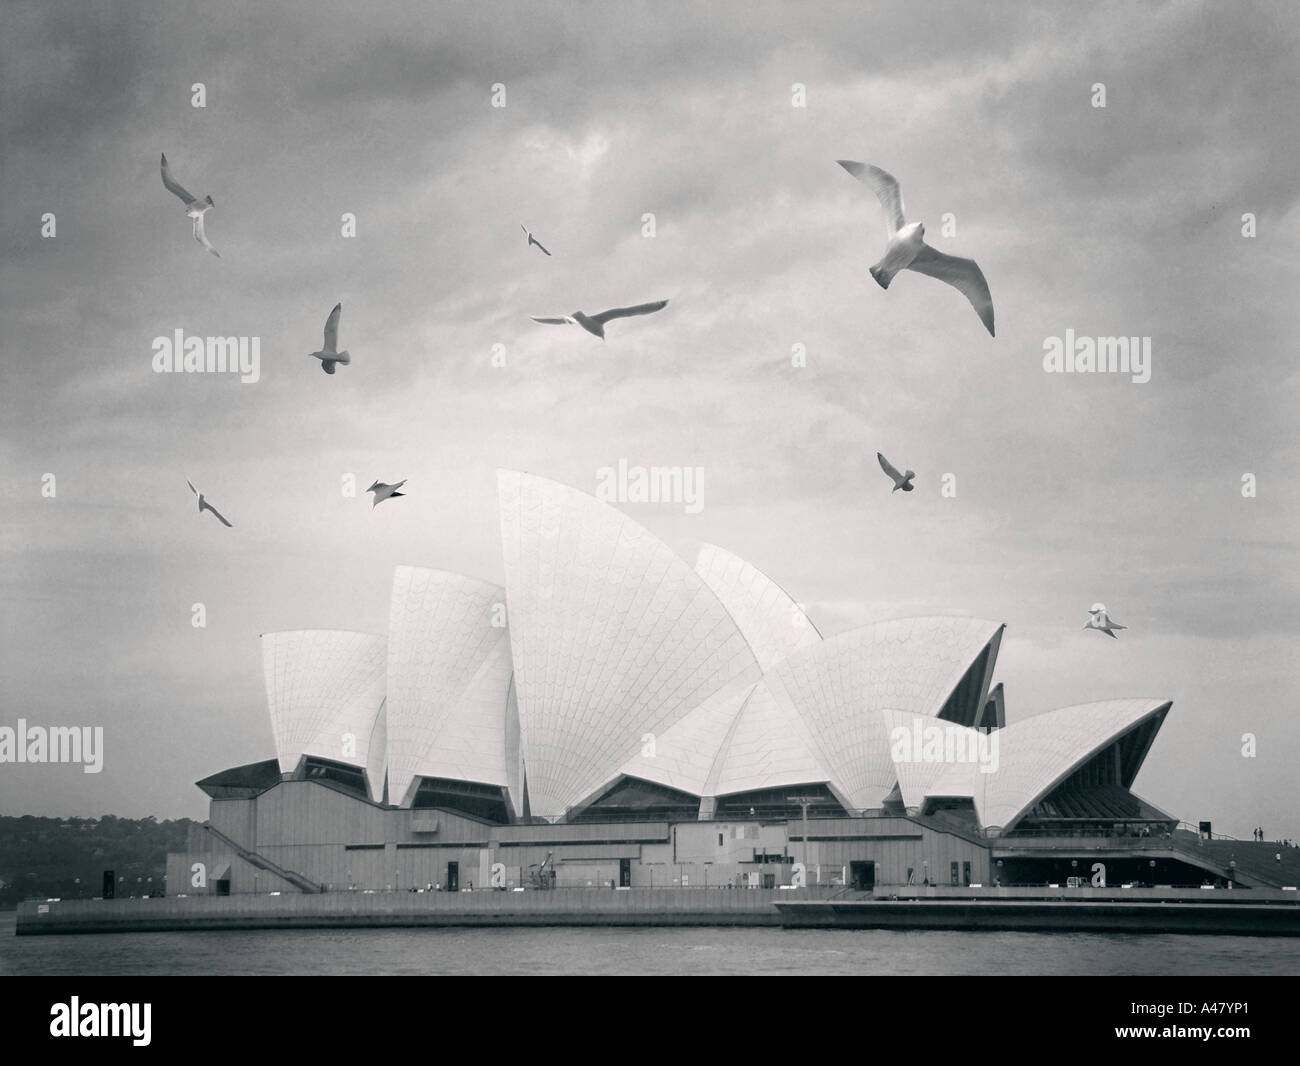 Sydney opera house, view across the harbor, with seagulls architecture, angled roof, glass, iconic shape, white tiles, water - Stock Image